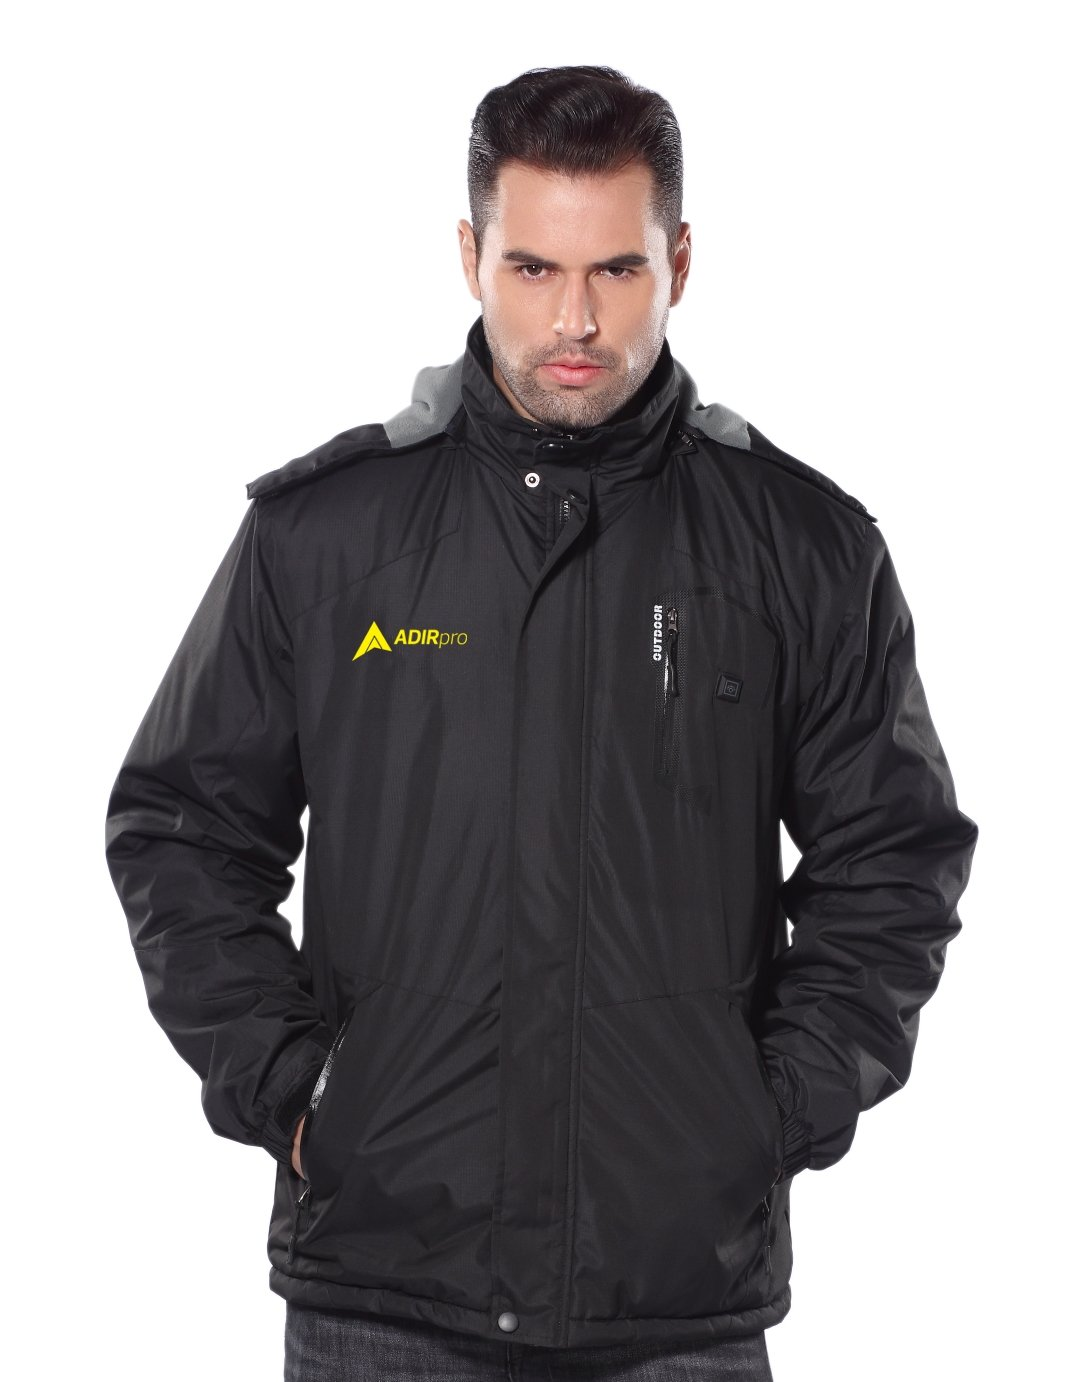 AdirPro Men's 5-Volt Max Lithium-Ion Soft Shell Heated Jacket Kit with 2.0Ah Battery (Large, Black)